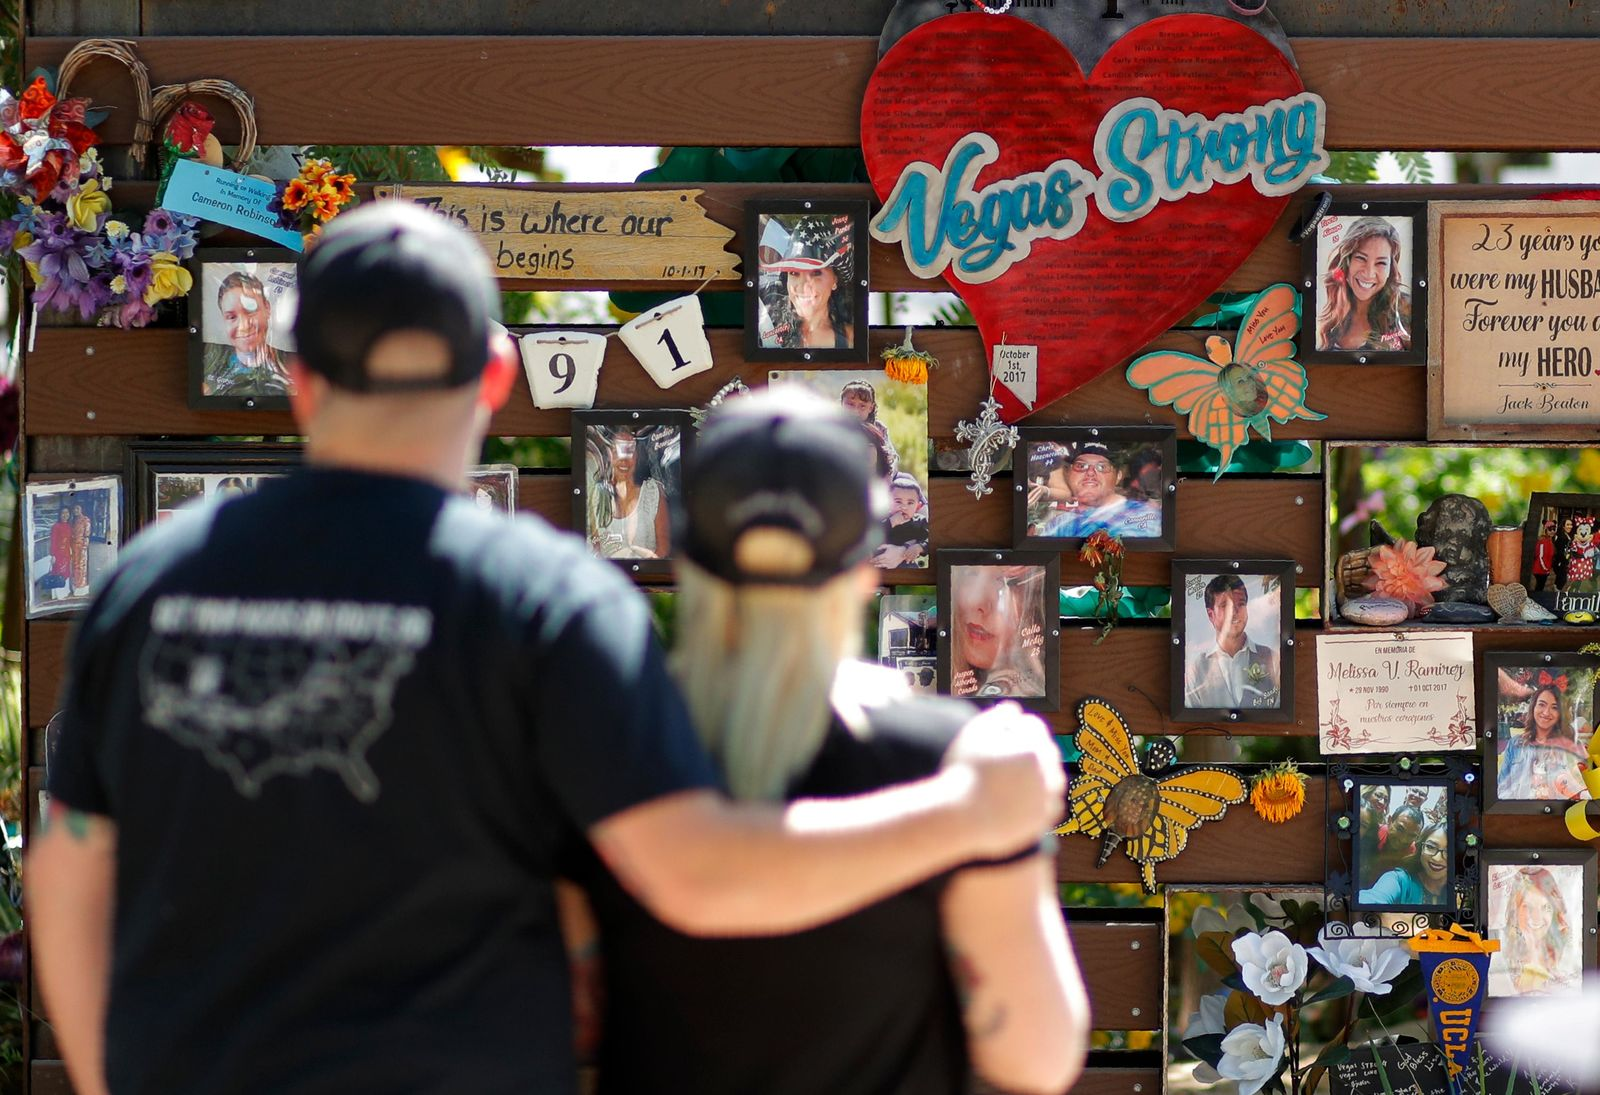 People visit a memorial garden for victims of a mass shooting in Las Vegas, Thursday, Oct. 3, 2019, in Las Vegas. (AP Photo/John Locher)